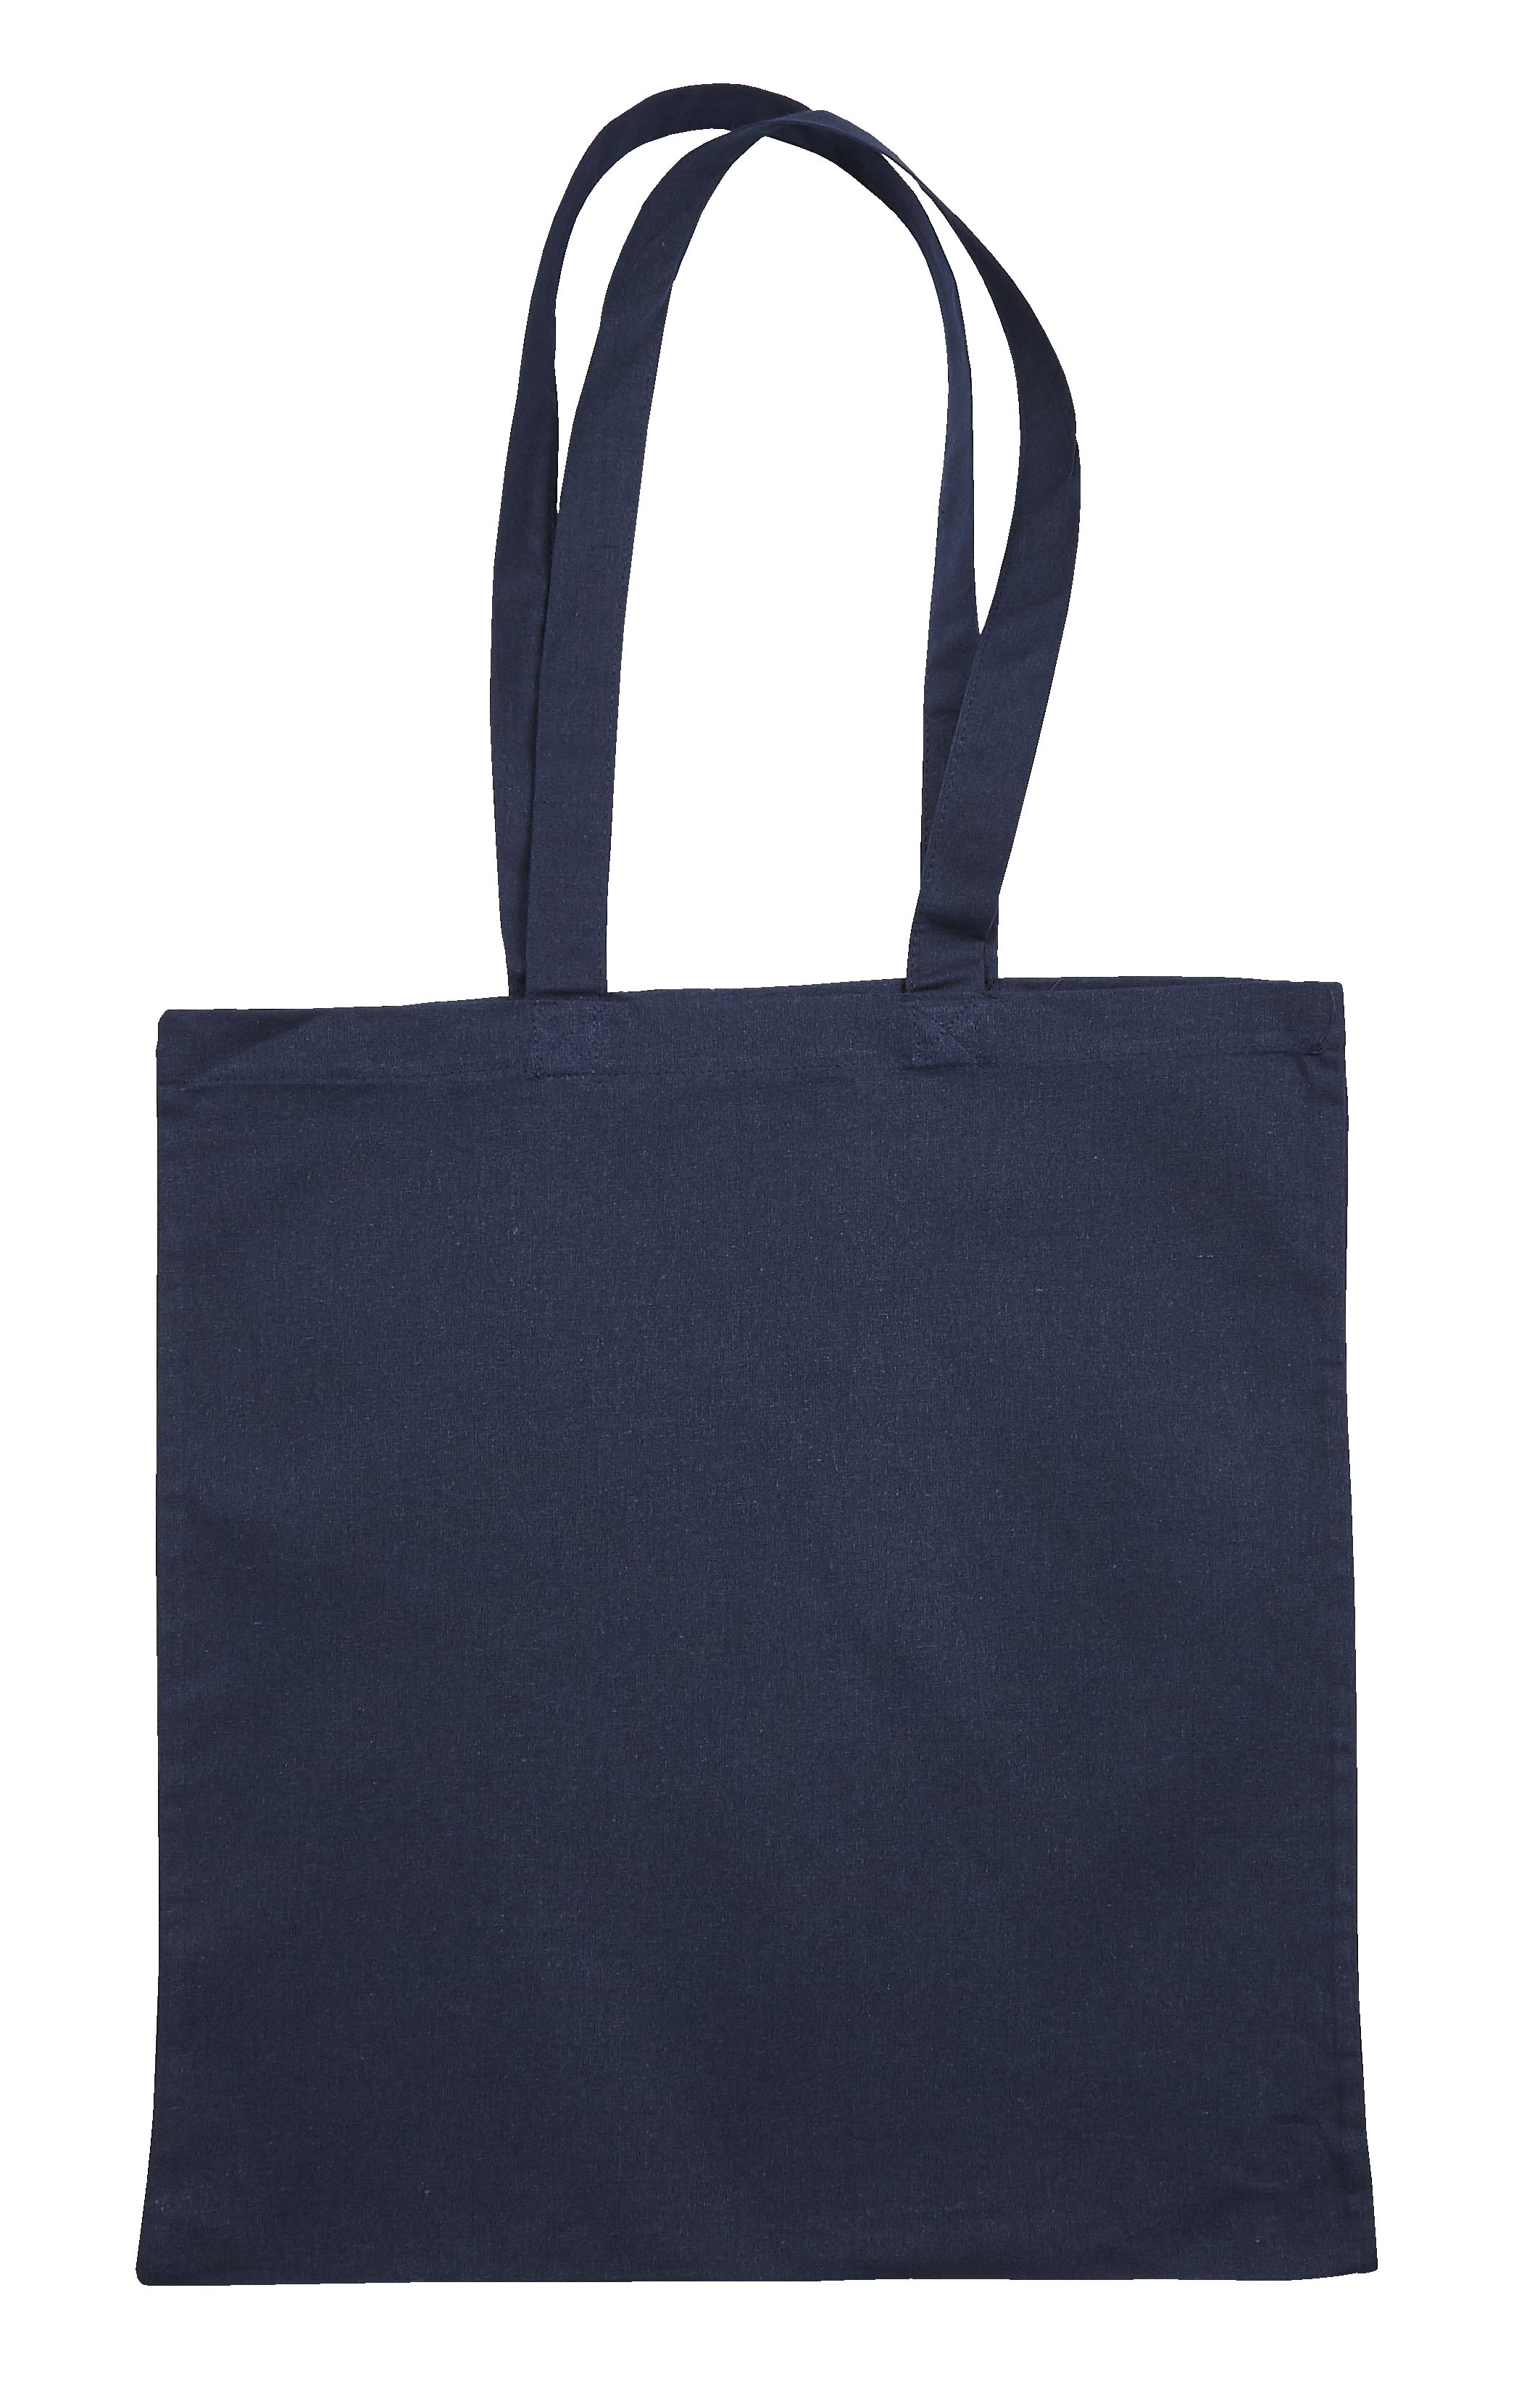 Navy Blue Jute Canvas Cotton Shopper Bags